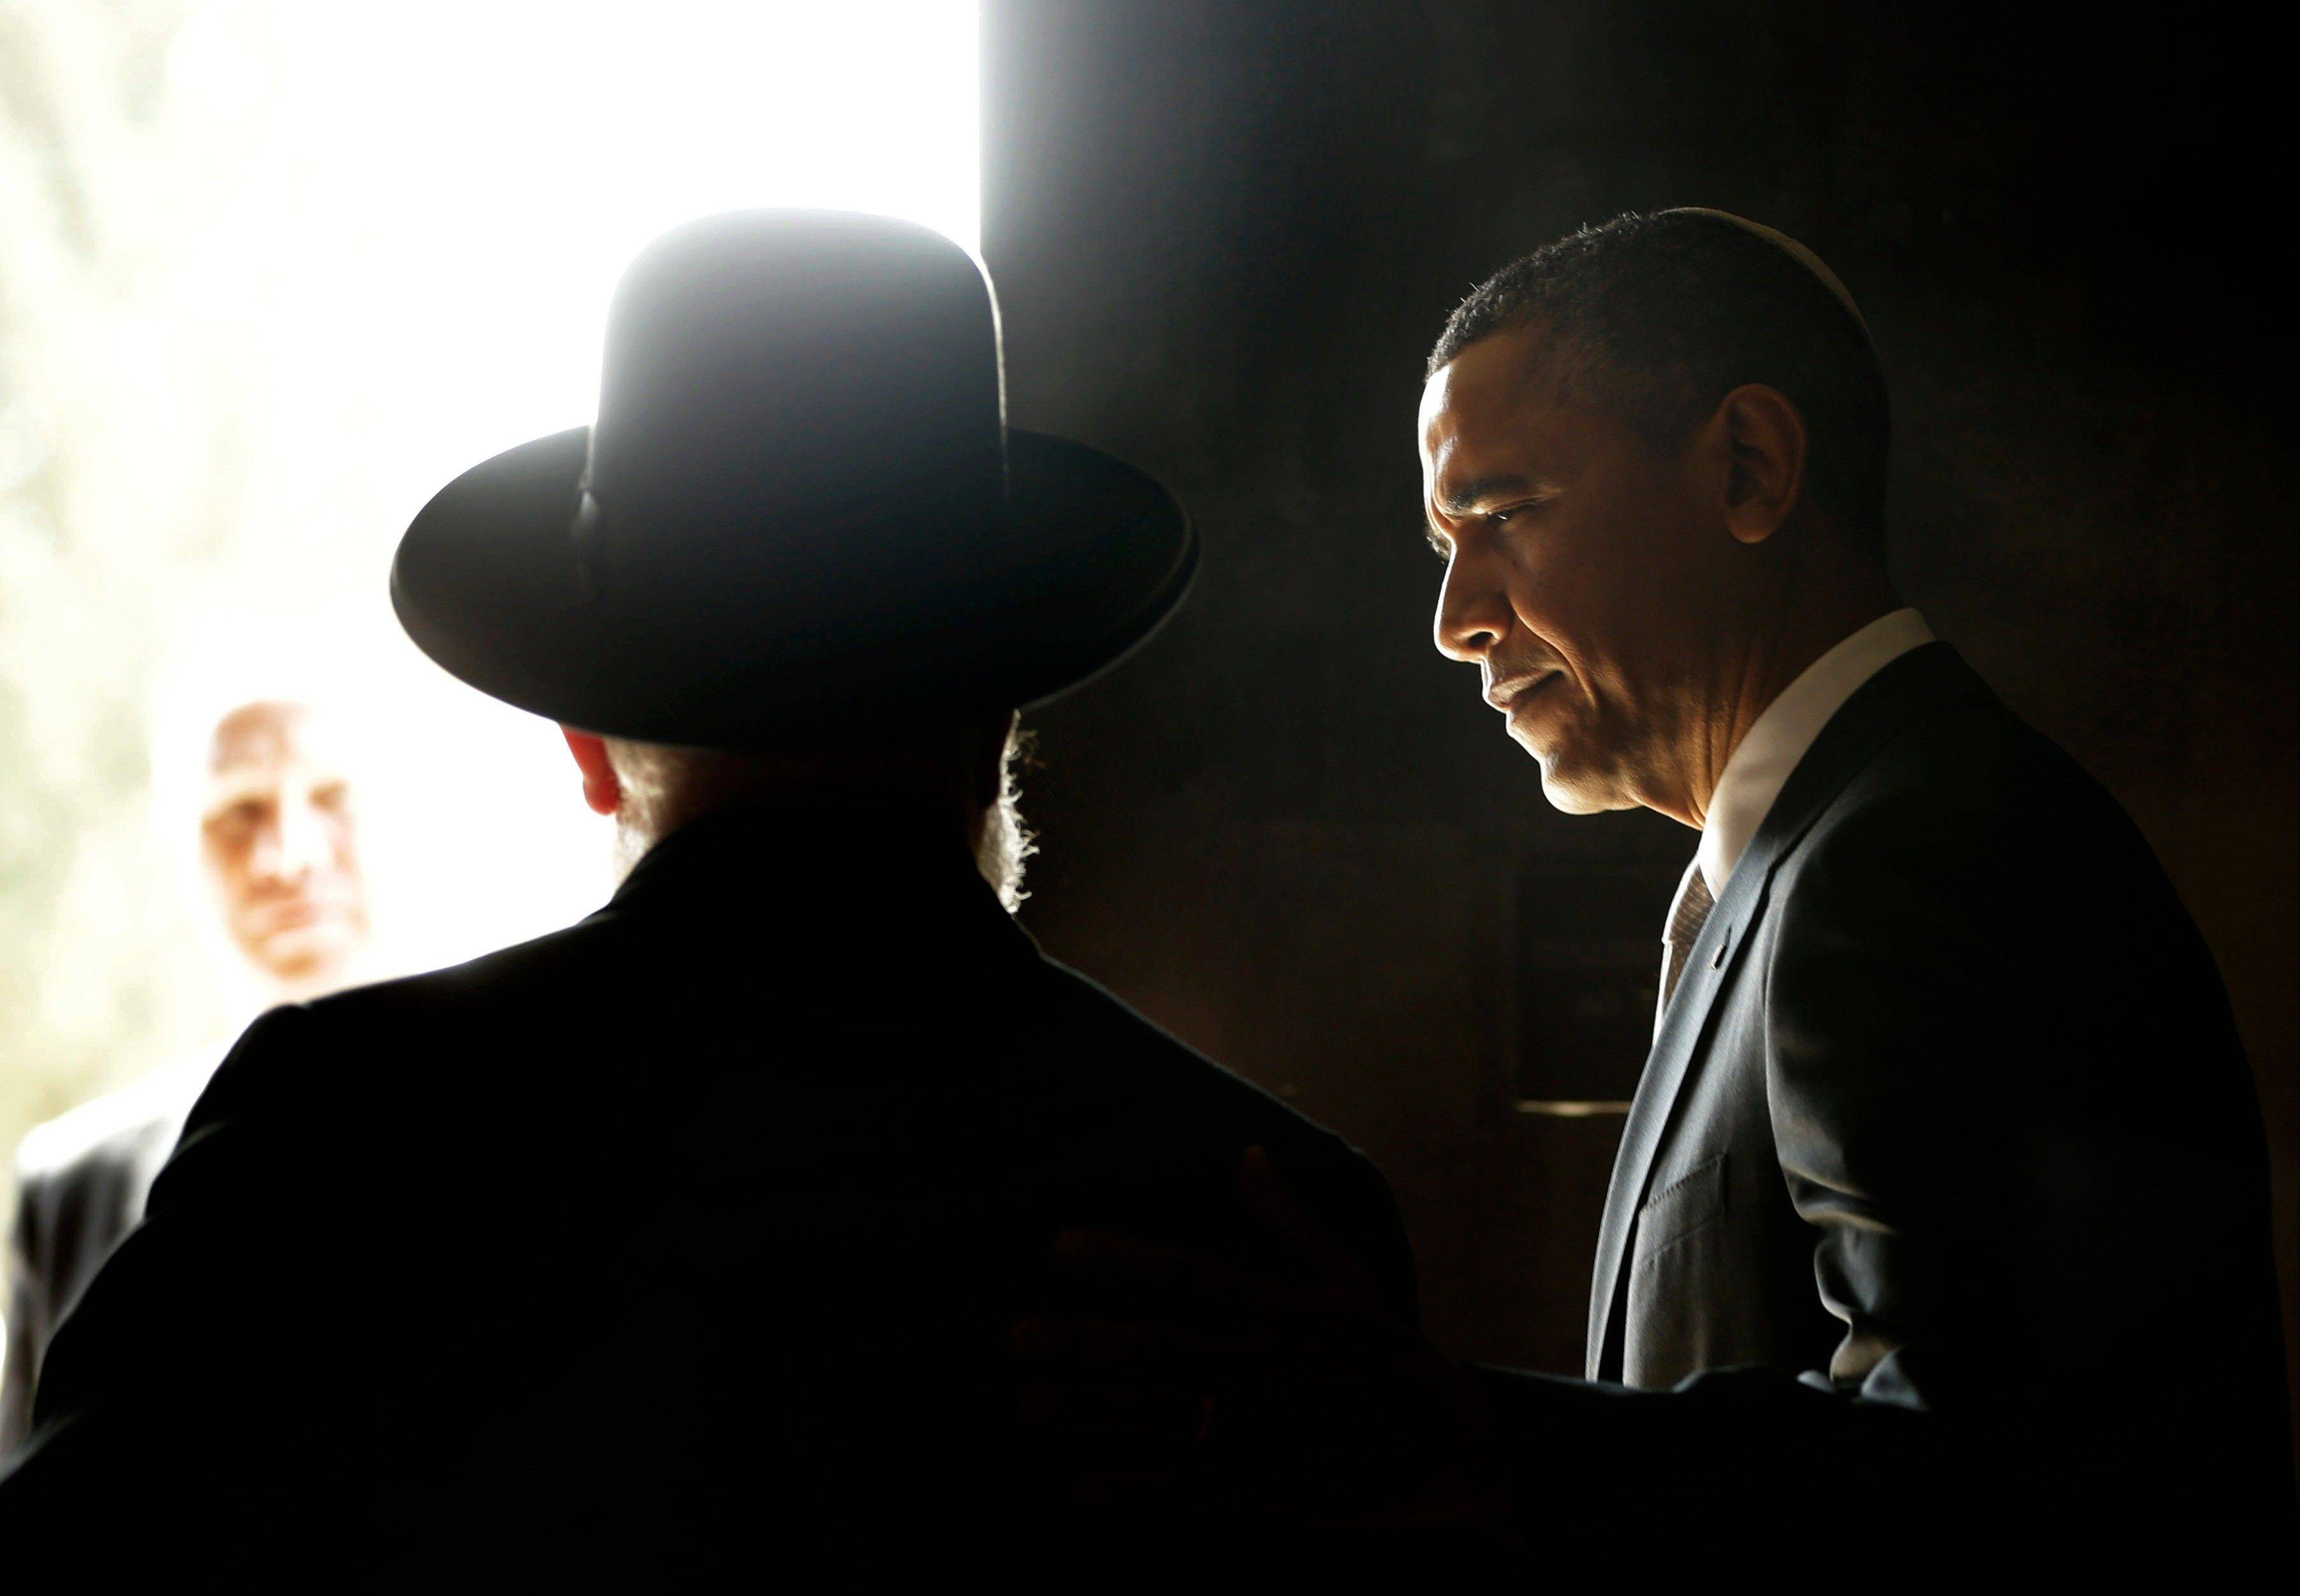 U.S. President Barack Obama, right, walks out with Rabbi Israel Meir Lau, left, after visiting the Hall of Remembrance at the Yad Vashem Holocaust Memorial in Jerusalem, Israel, Friday, March 22, 2013.